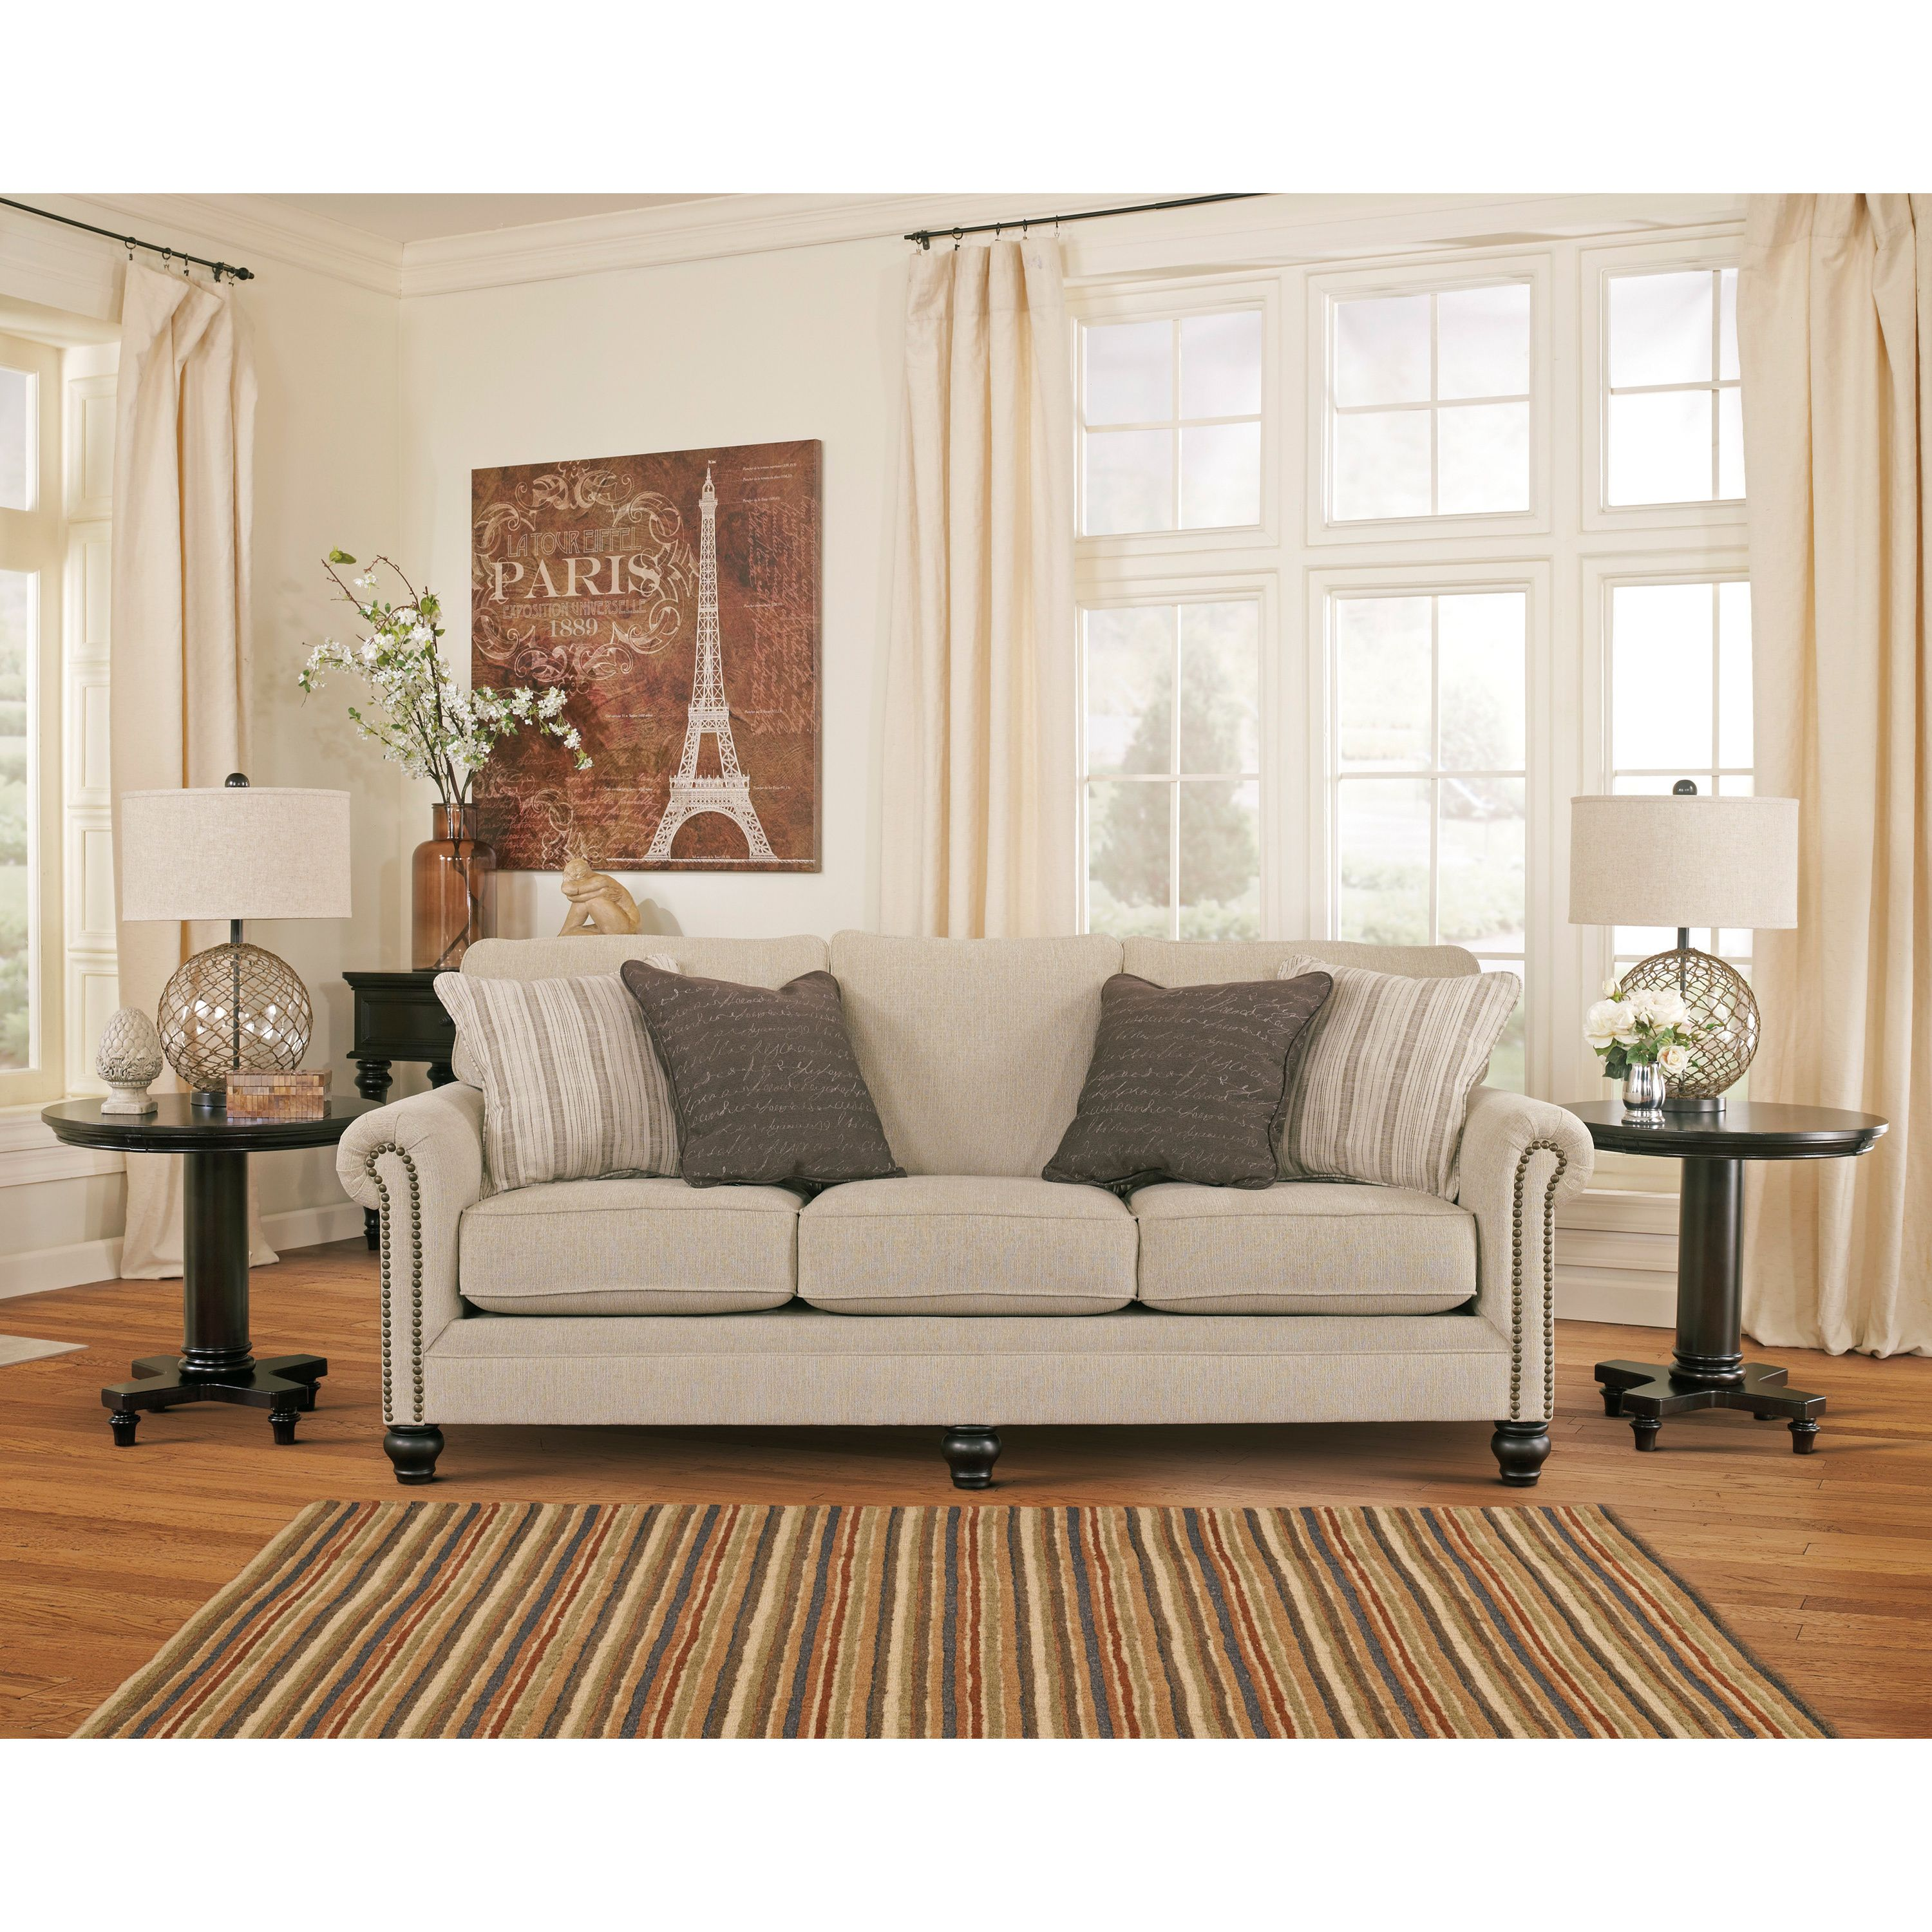 Upholstered In Neutral Linen Tones This Elegant Milari Sofa Features Clic Rolled Arms Studded